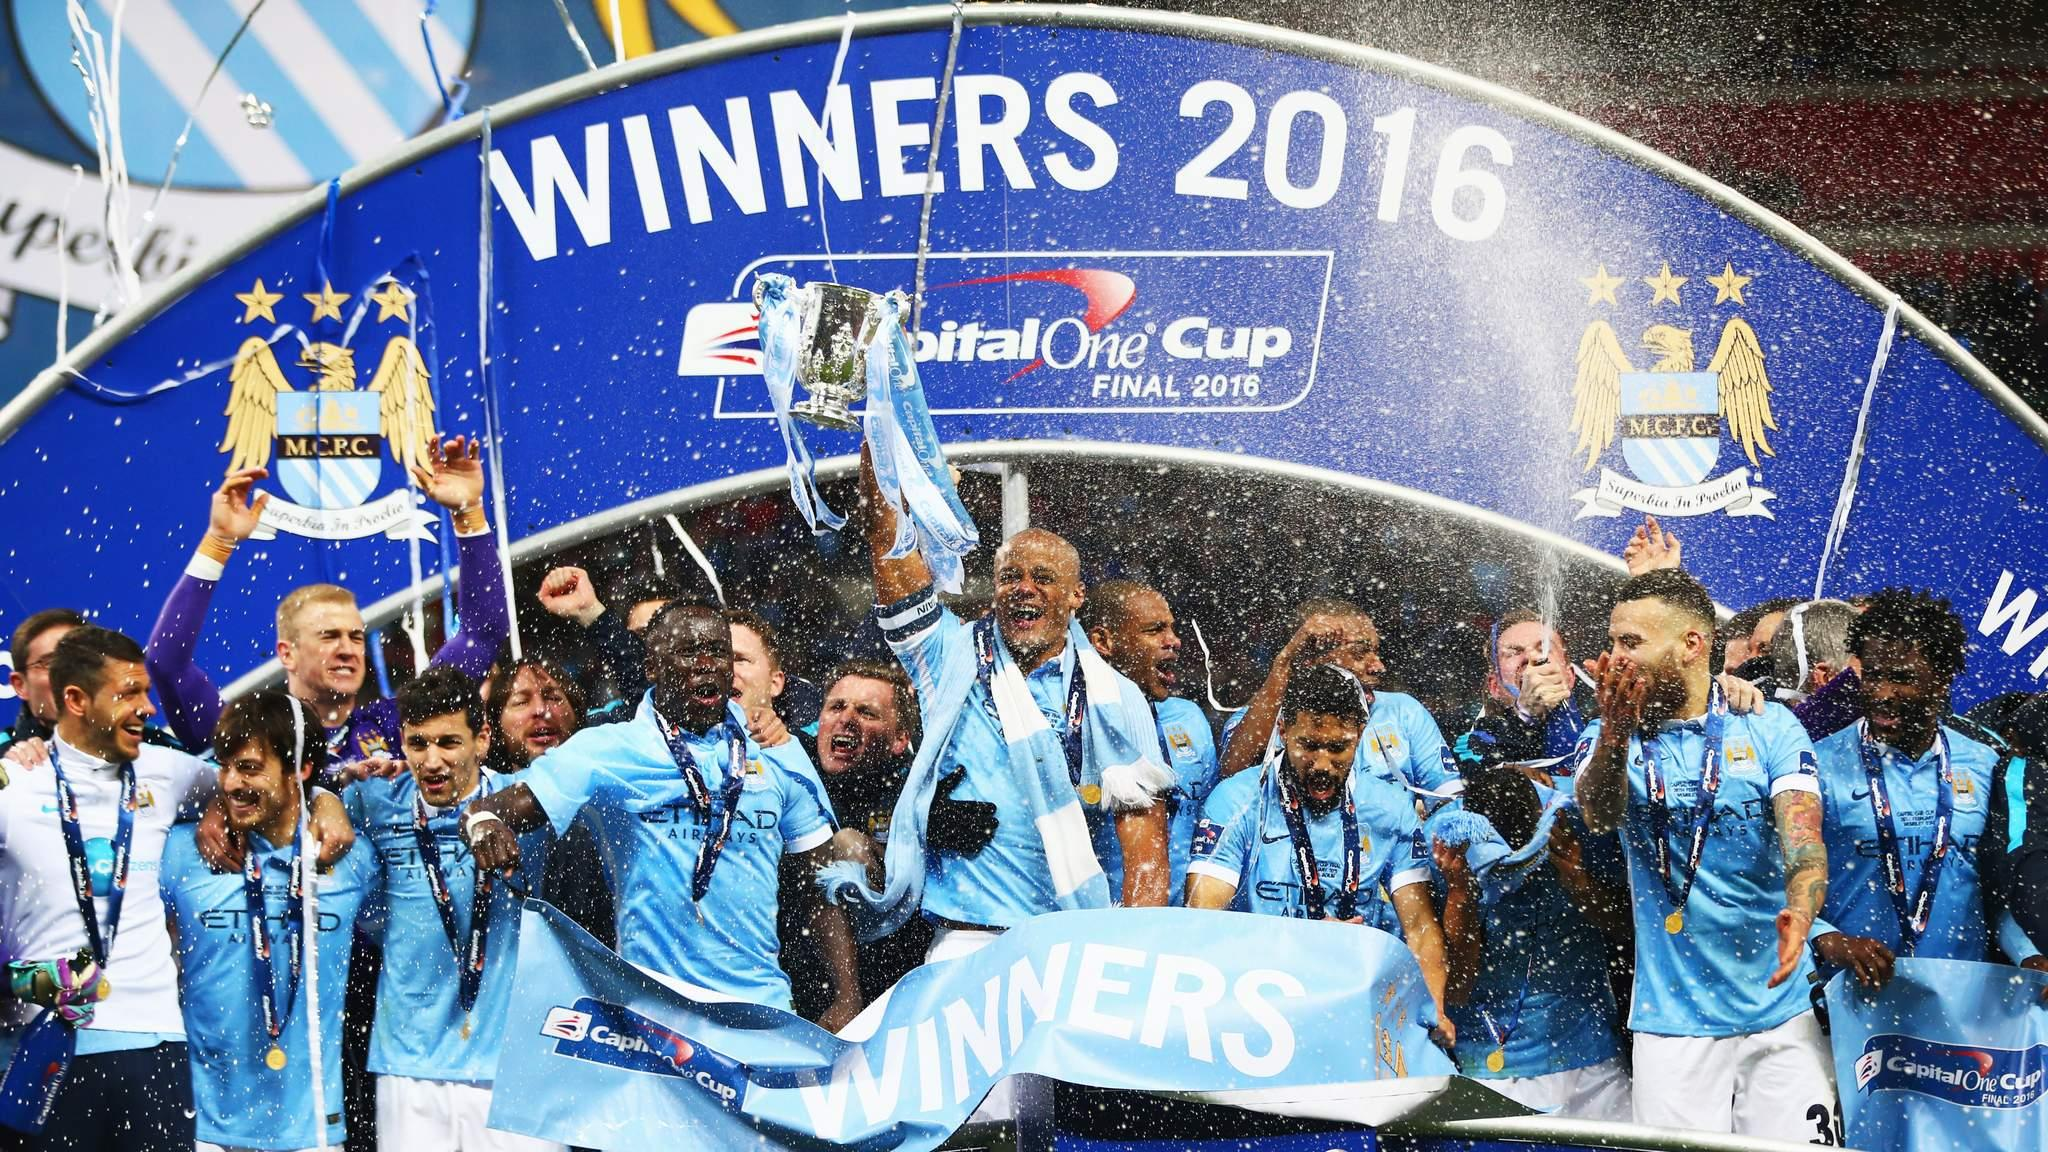 How Many Man City Won The Cup: Man City Win Capital One Cup On Penalties